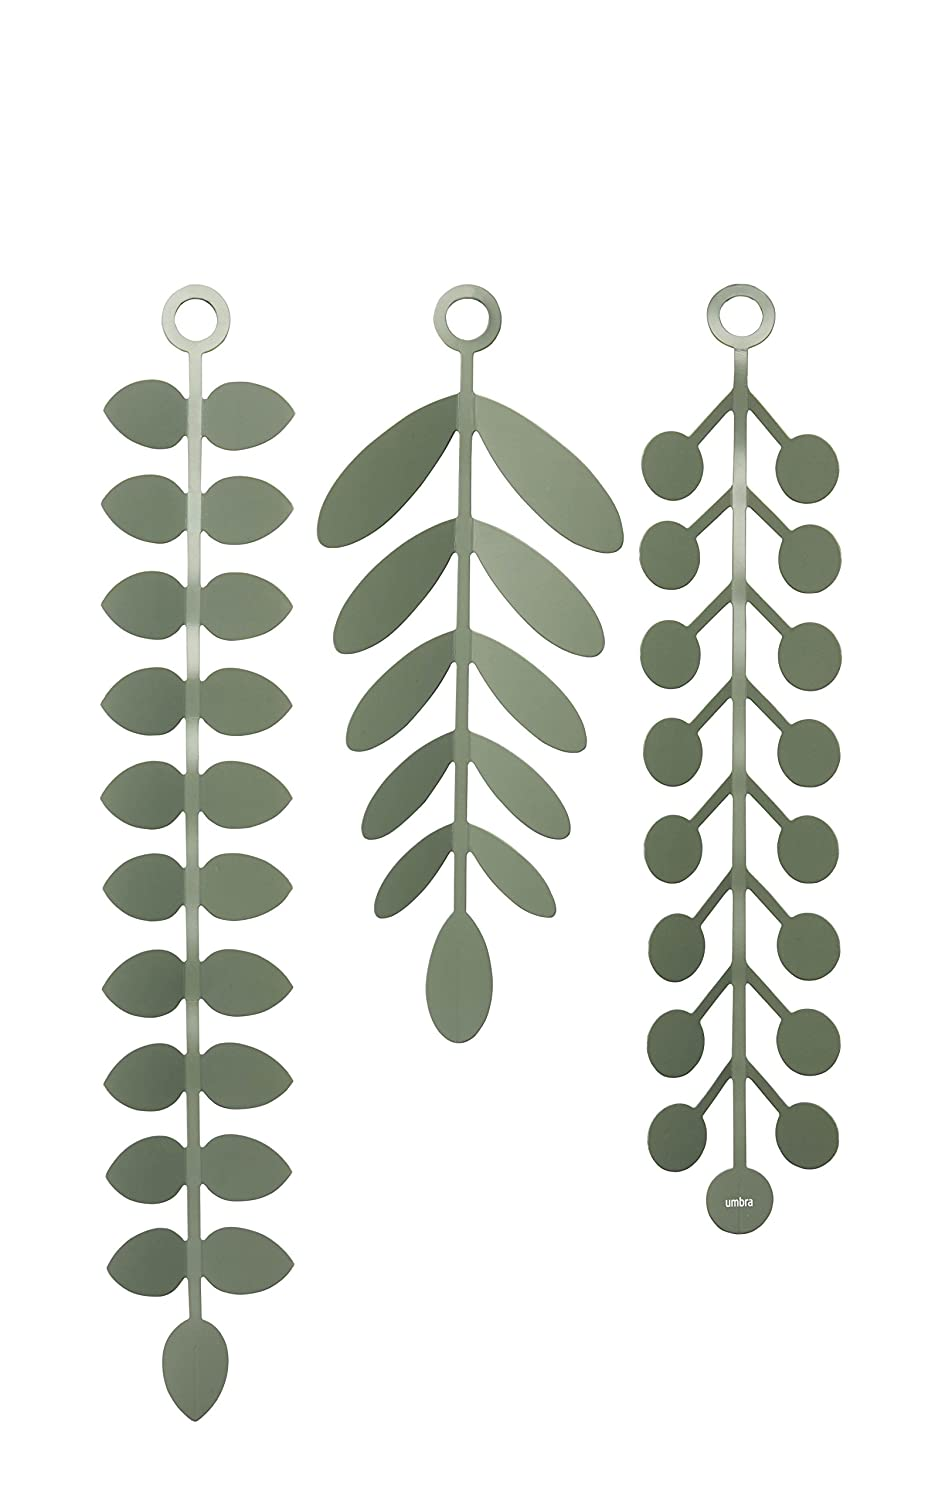 Umbra Vines Wall Decor - Wall Mounted Vines Wall Decor, Peel and Stick Wall Murals, Spruce 1009568-1095